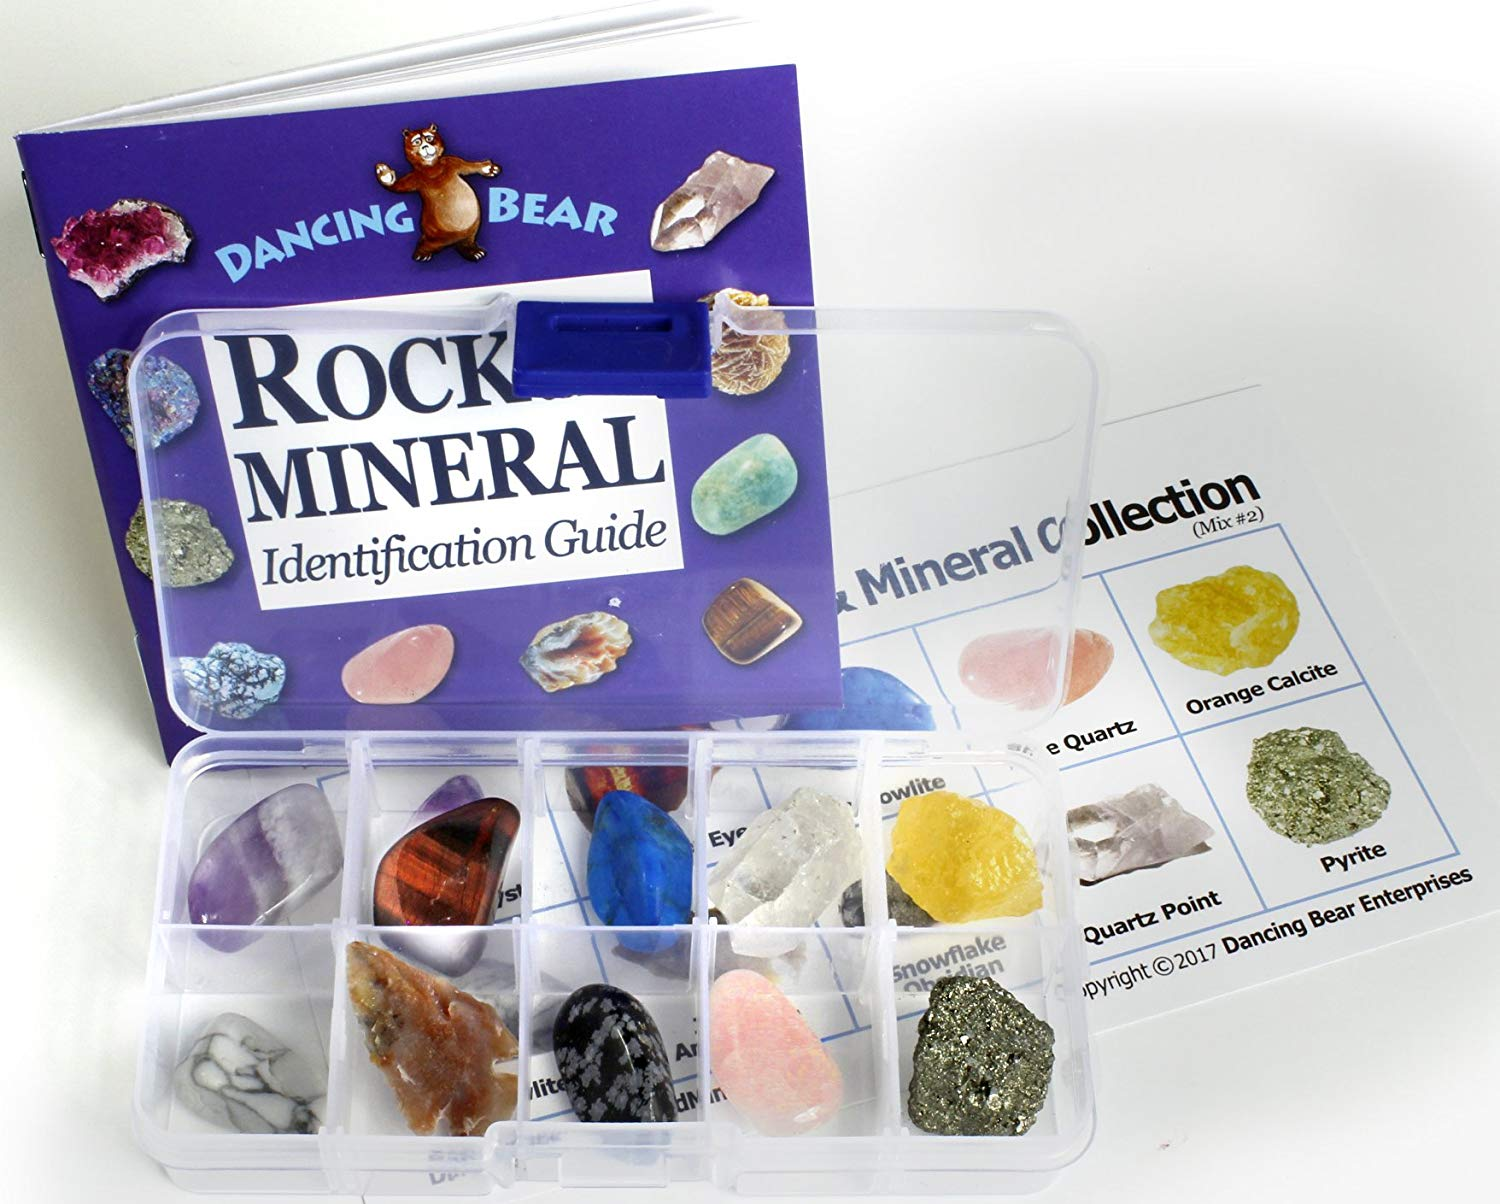 If able, get your hands on some real rocks for students to touch and observe.